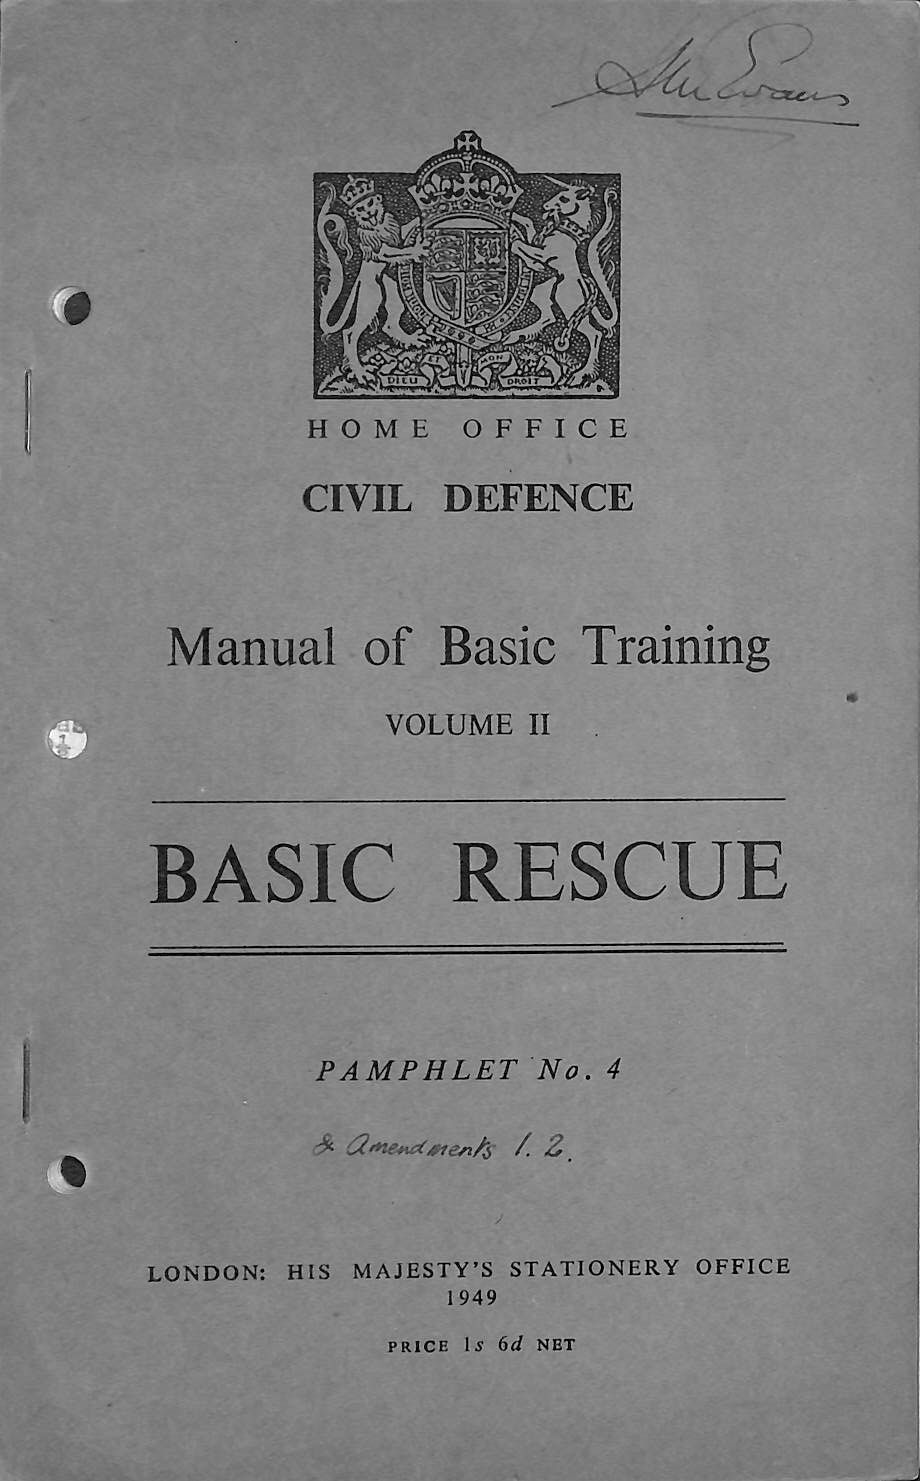 Image for Civil Defence Manual of Basic Training - Volume 2 (Two) - Basic Rescue - Pamphlet No 4 (Four)